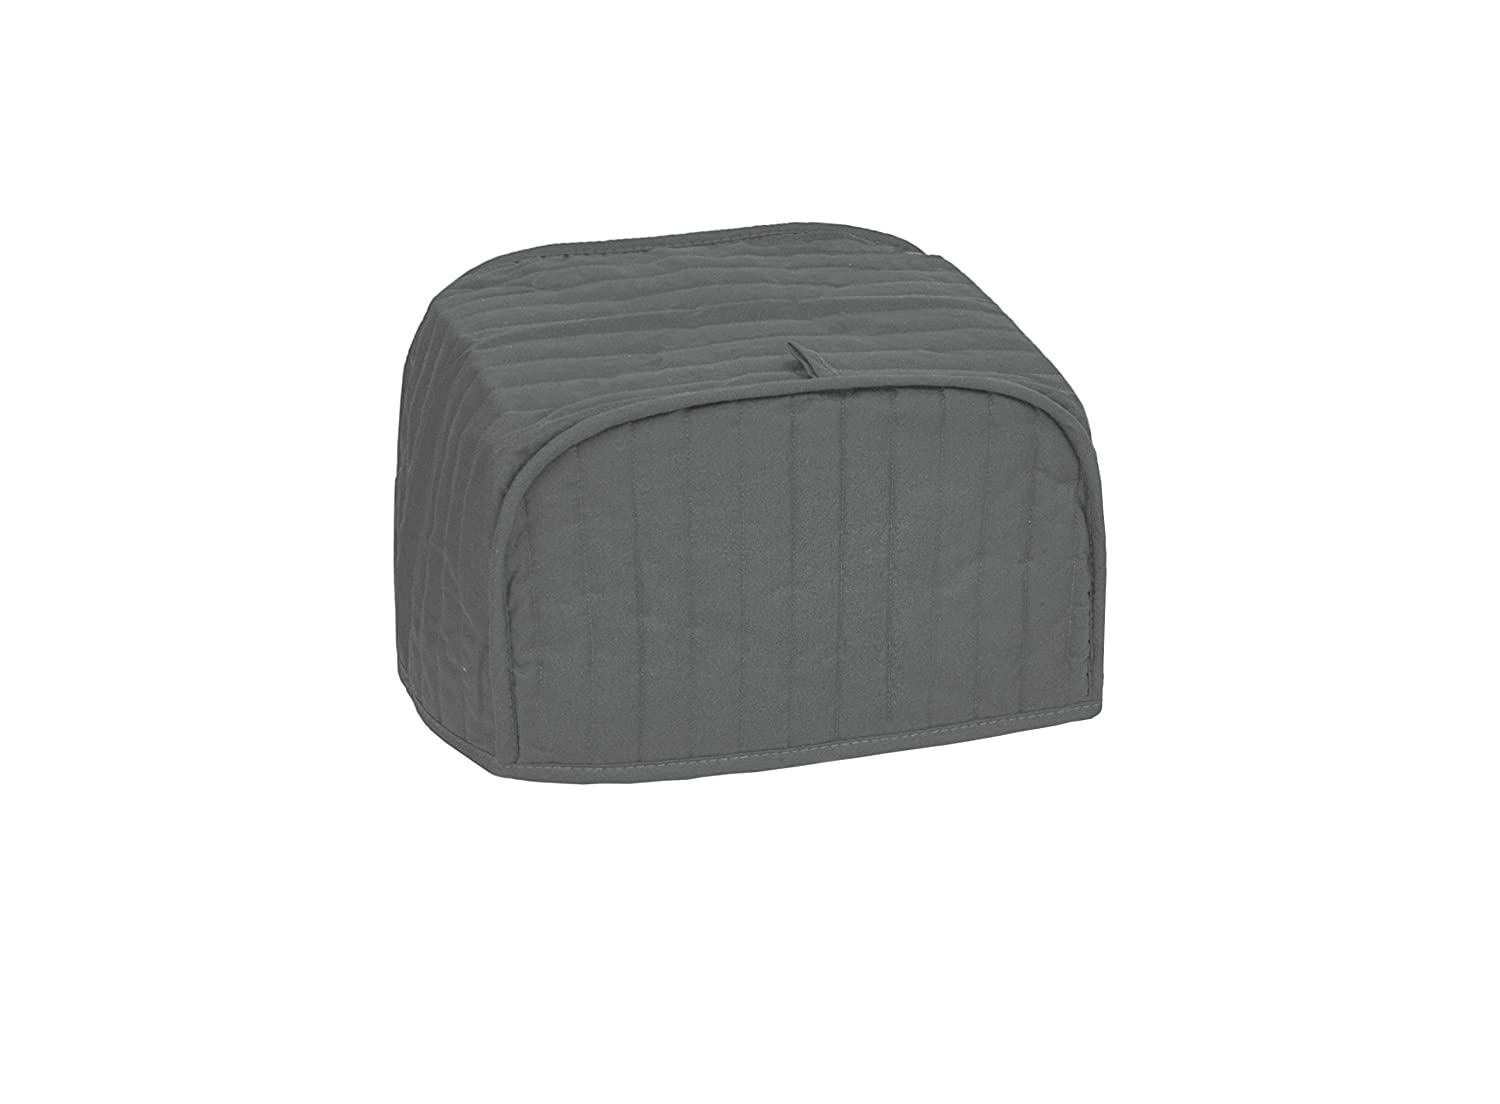 RITZ Polyester / Cotton Quilted Two Slice Toaster Appliance Cover, Dust and Fingerprint Protection, Machine Washable, Graphite